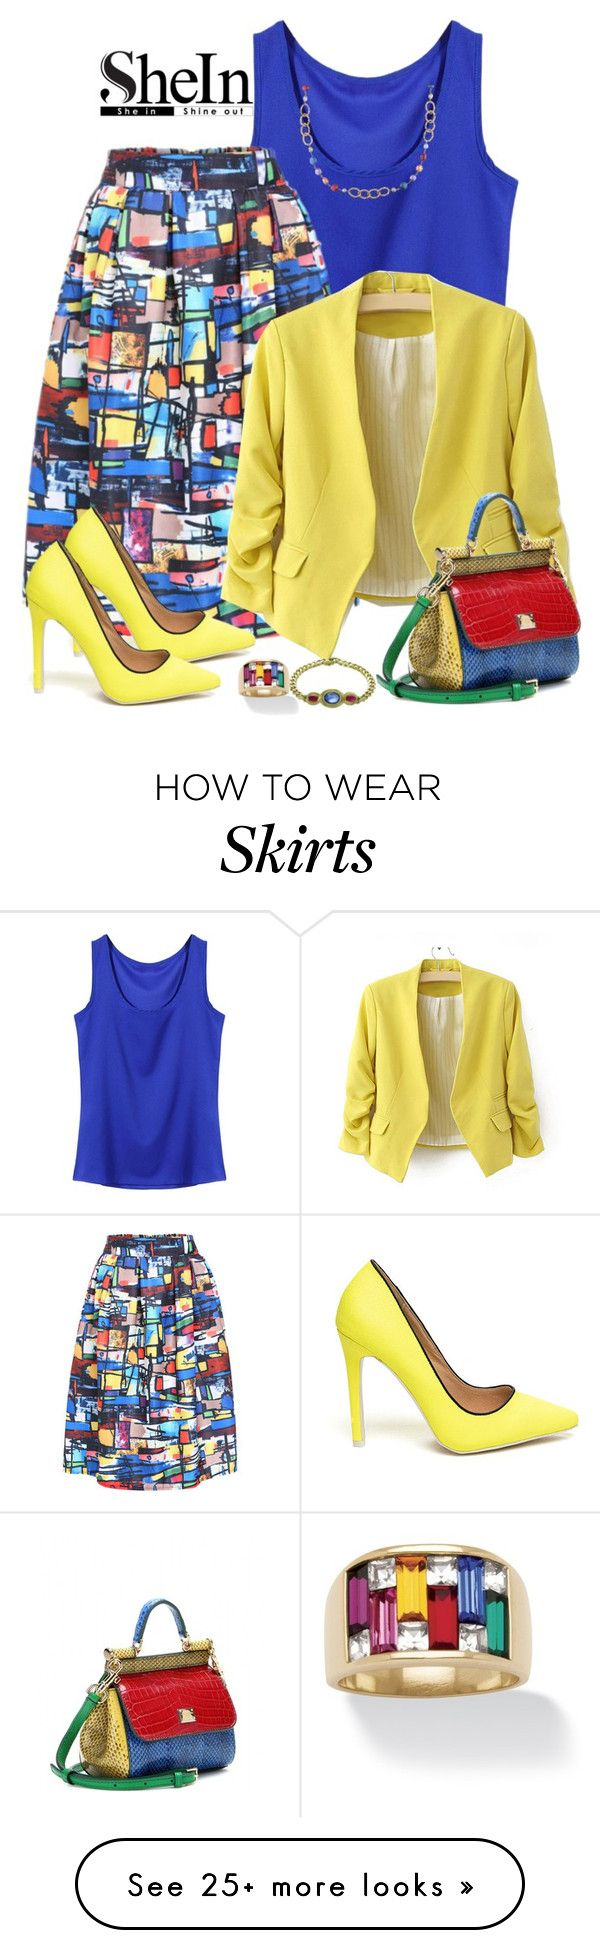 """SheIn Multi Colored Skirt"" by lorrainekeenan on Polyvore featuring Dolce&Gabbana, Bulgari, Palm Beach Jewelry and Ice"